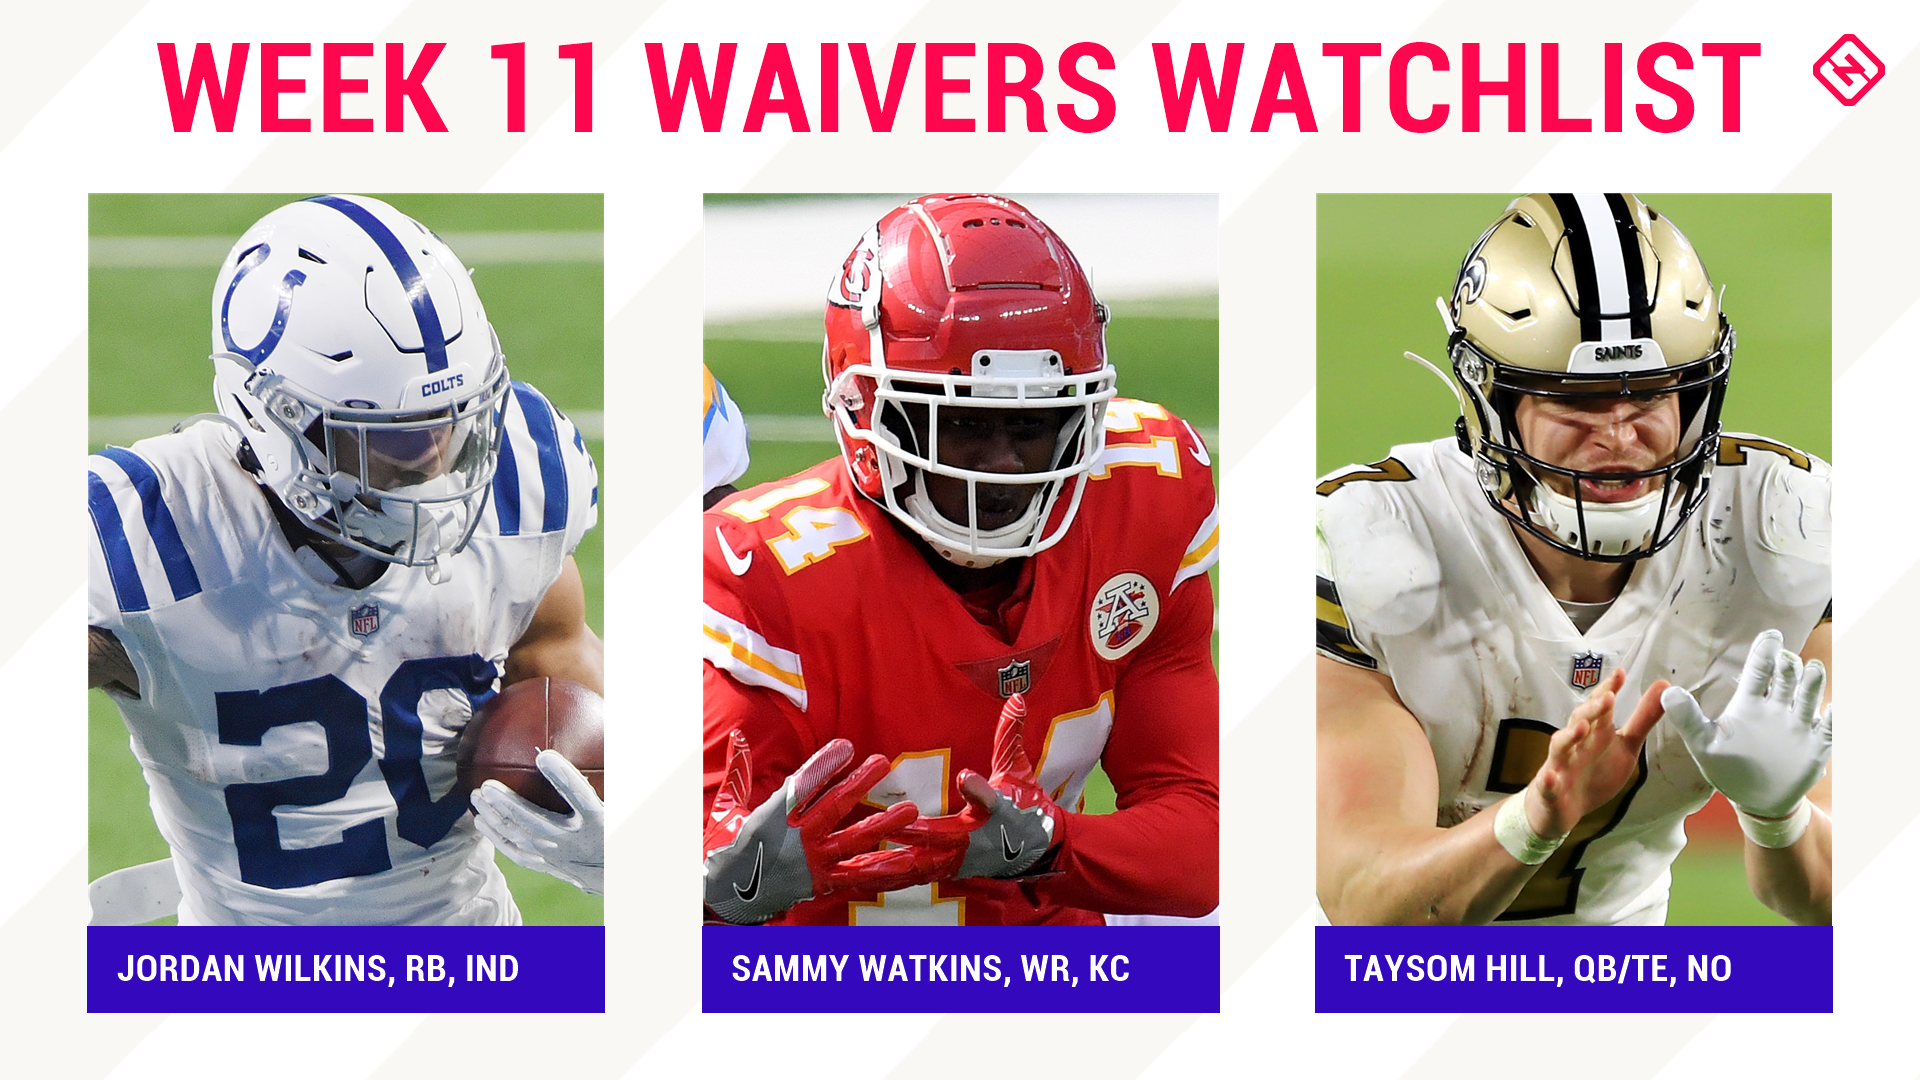 Fantasy Football Waiver Wire Watchlist for Week 11: Streaming targets, free agent sleepers include Jordan Wilkins, Sammy Watkins, Taysom Hill